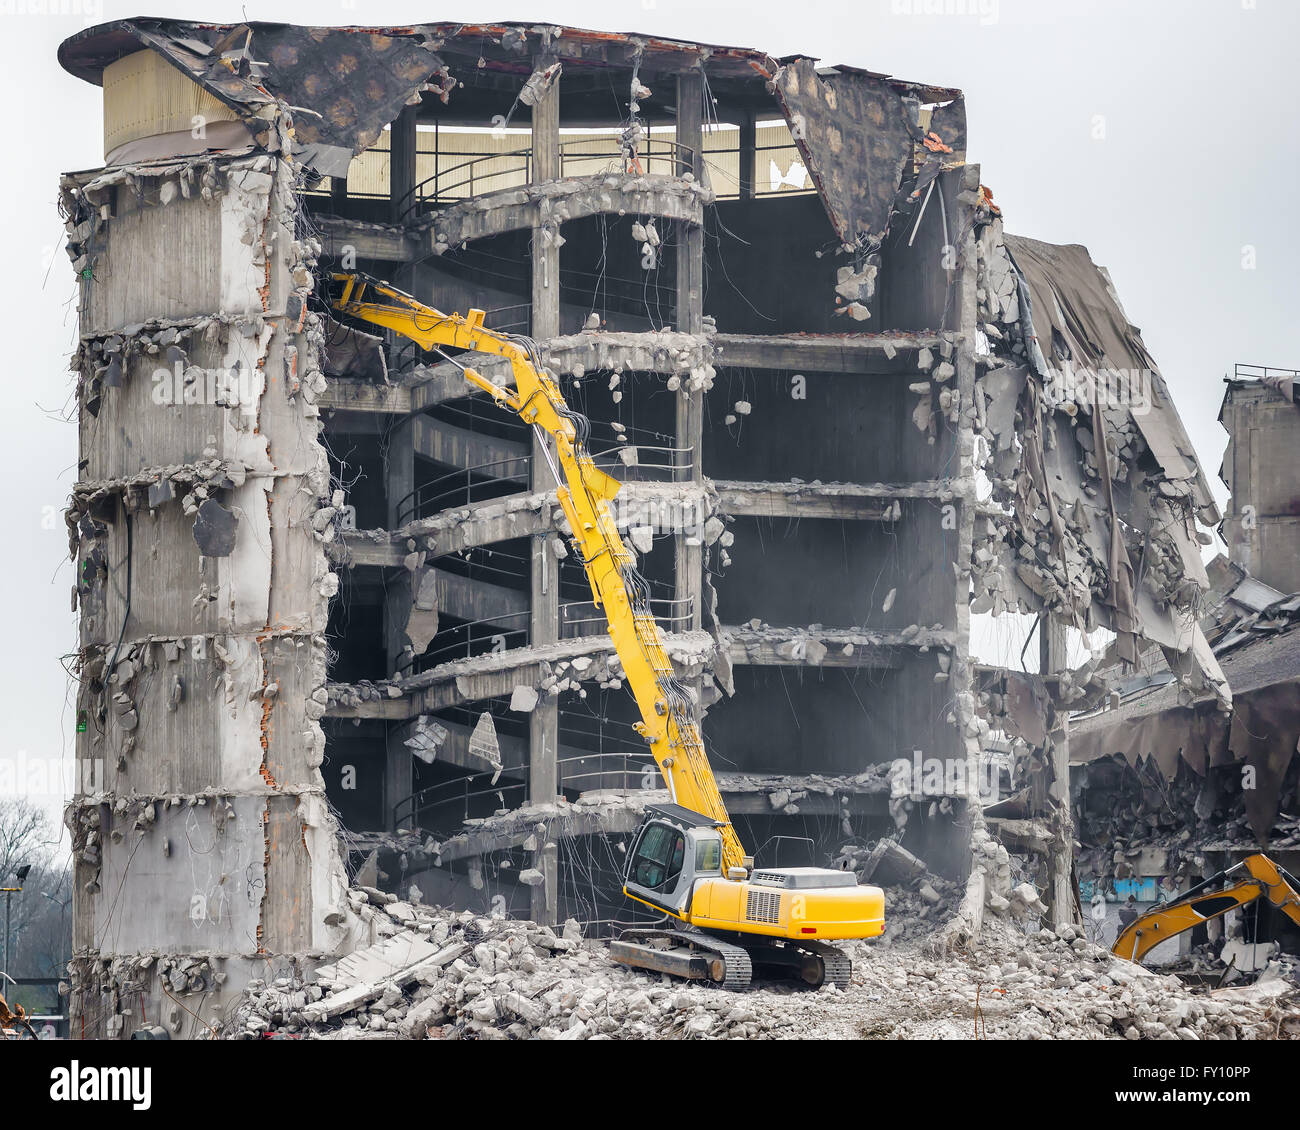 demolition of old industrial building - Stock Image